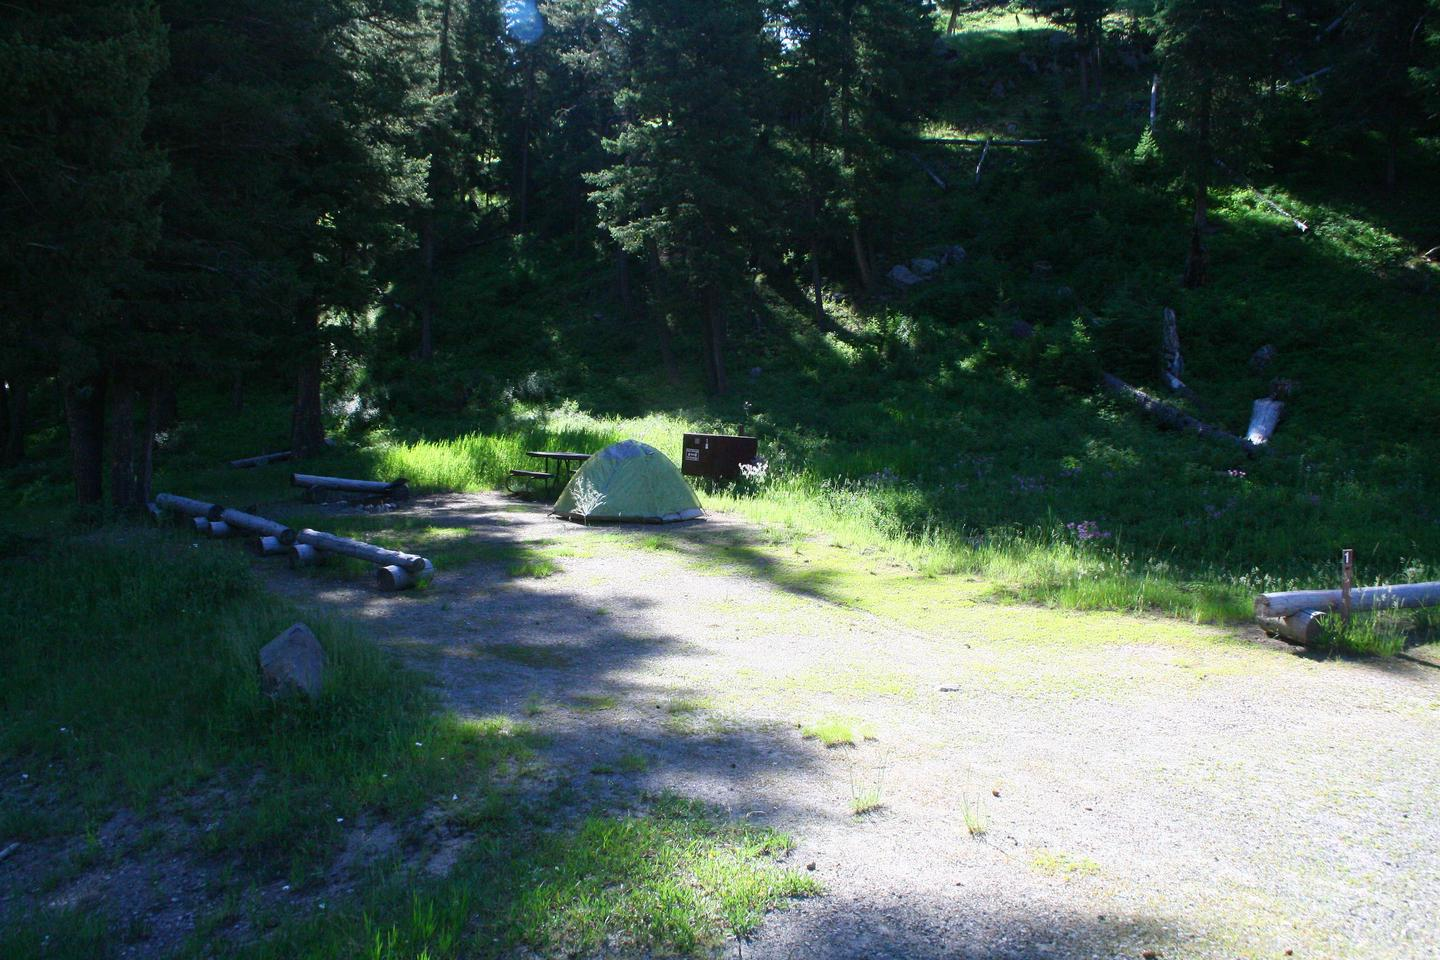 Slough Creek Campground Site #1